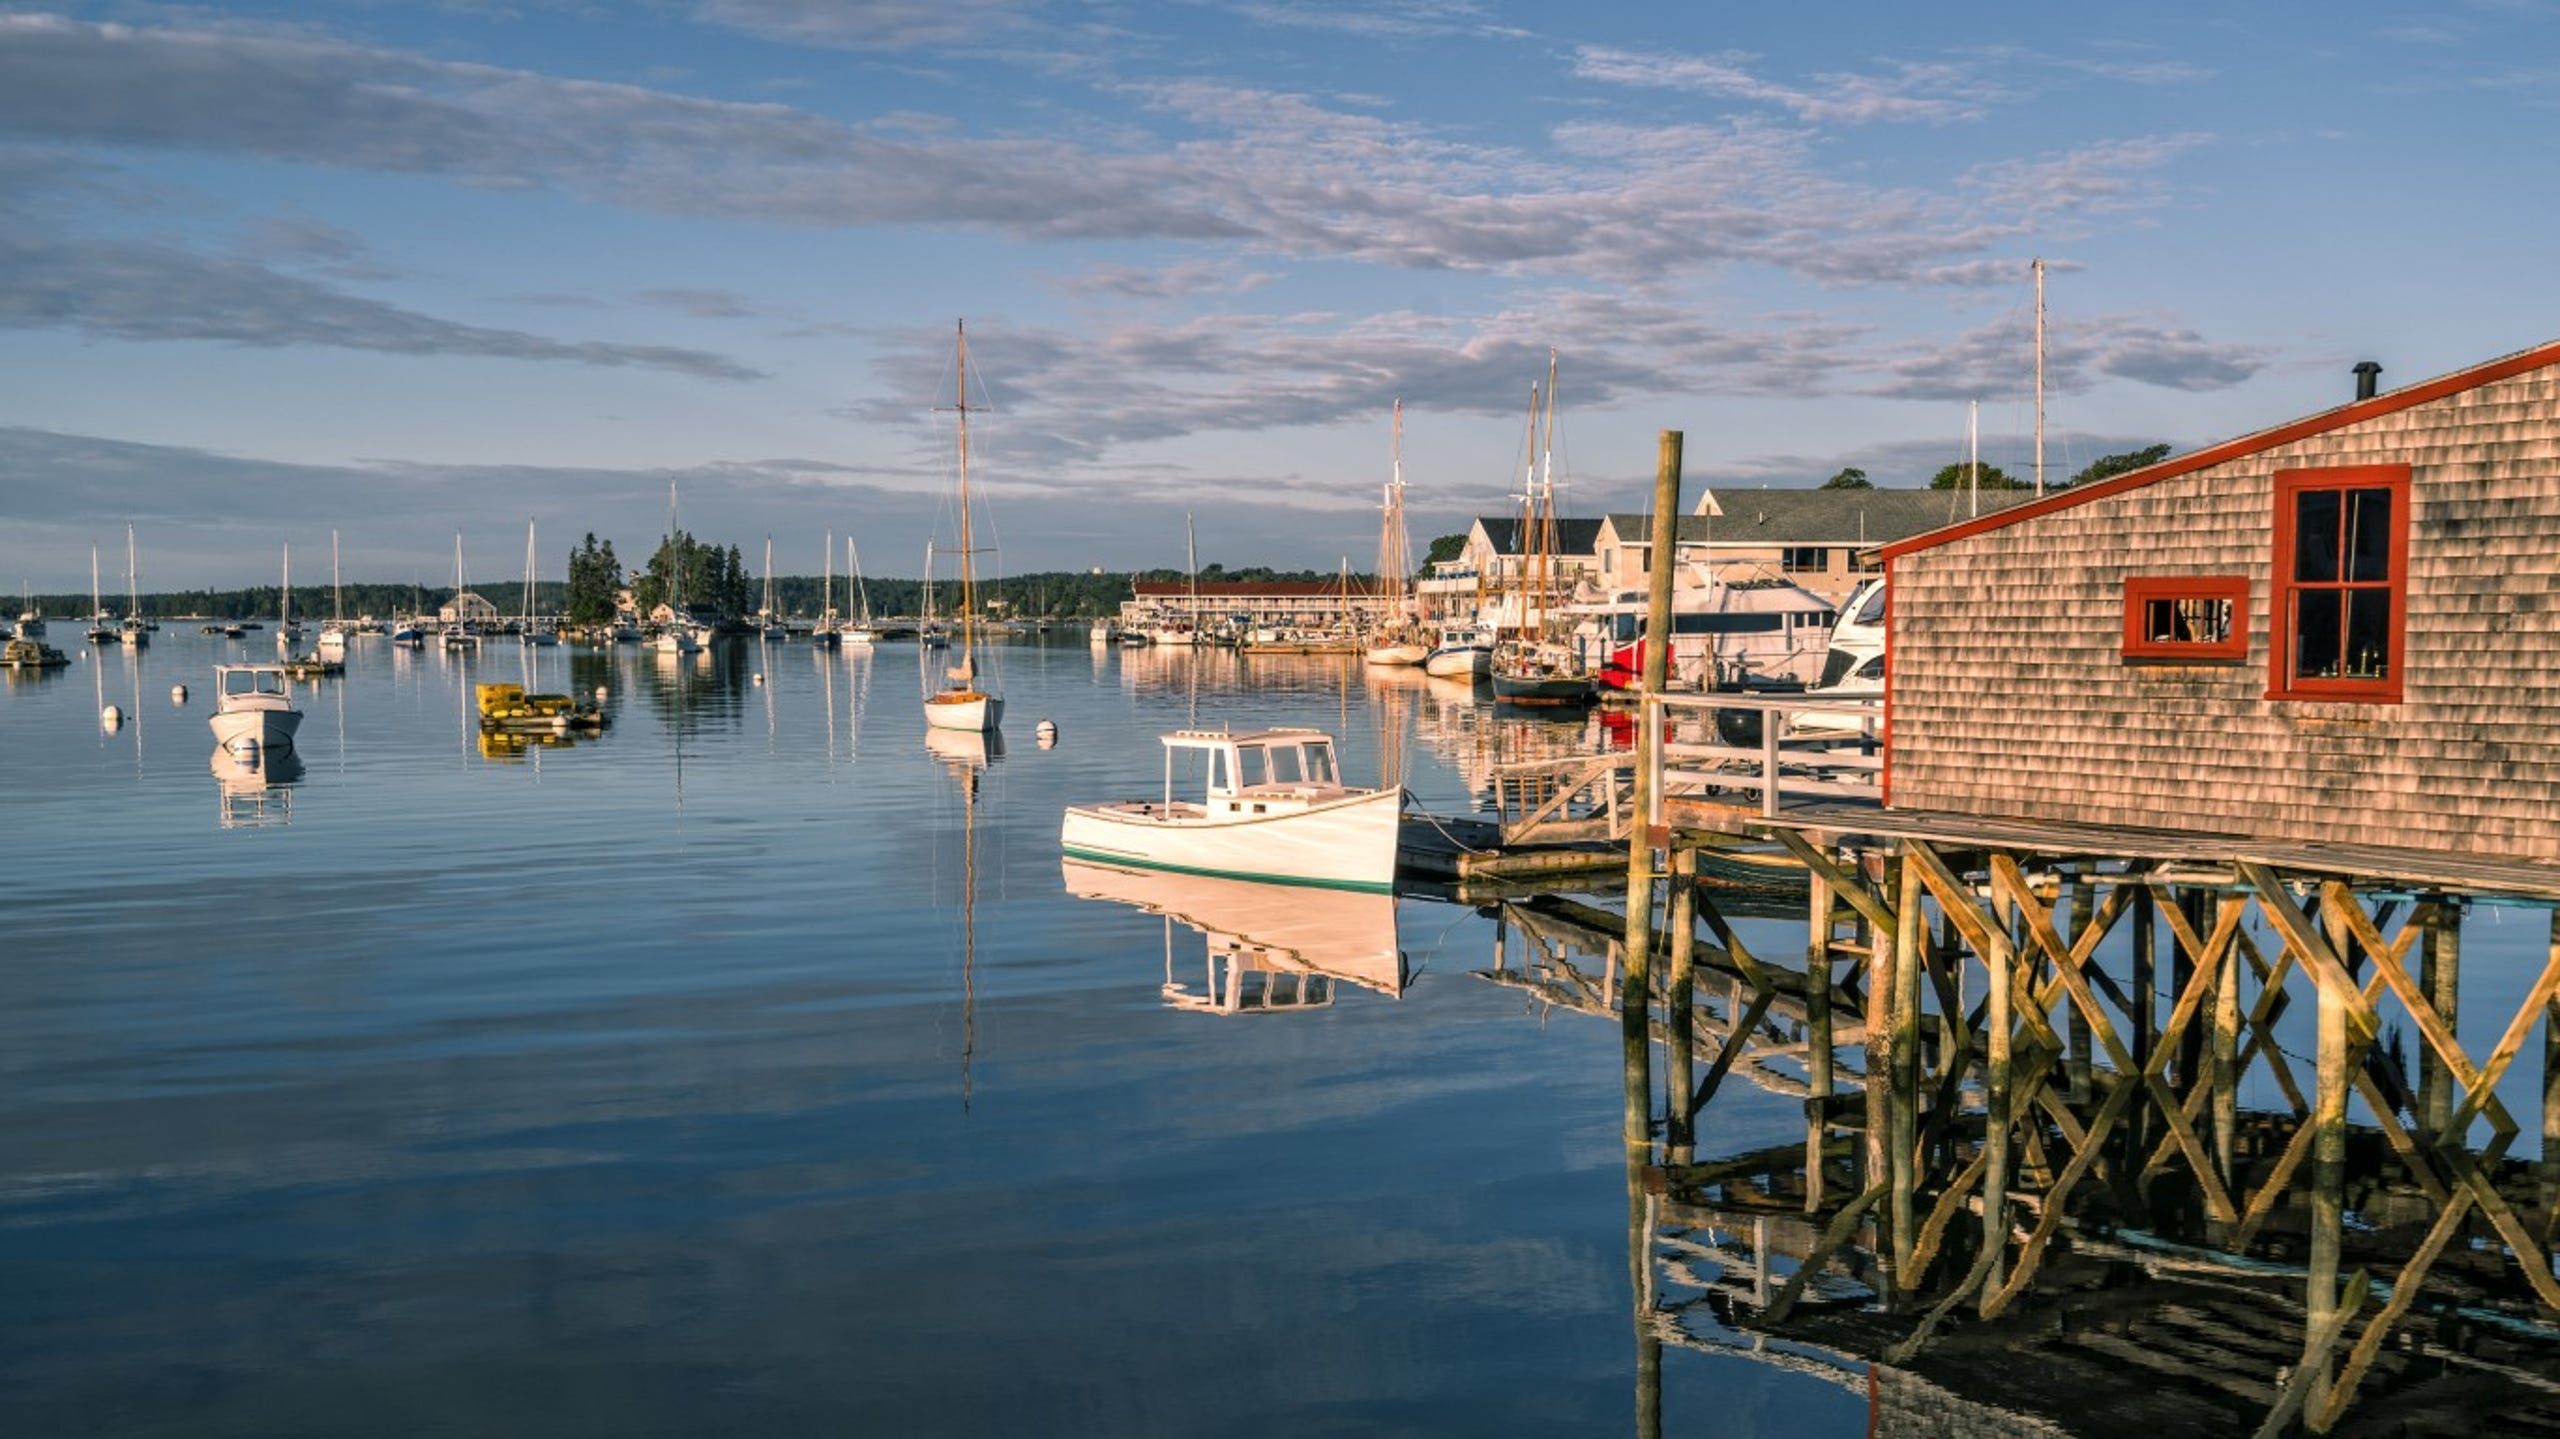 Boothbay Harbor, Maine • The seaside village of Boothbay Harbor is the perfect place for a weekend getaway in Maine. Whether you hop on a boat tour of the harbor or rent a kayak and explore it on your own, you can get up close to islands, lighthouses, puffins and lobster boats. Downtown you can wander through art galleries, shops and restaurants, and walk across the longest wooden footbridge in the country. Local highlights are the Coastal Maine Botanical Gardens and the Boothbay Railway Village, which hosts an Annual Fall Foliage Festival on Indigenous People's Day Weekend. From Oct. 13 to 15, the festival features artisanal products and food vendors, live entertainment and antique cars.